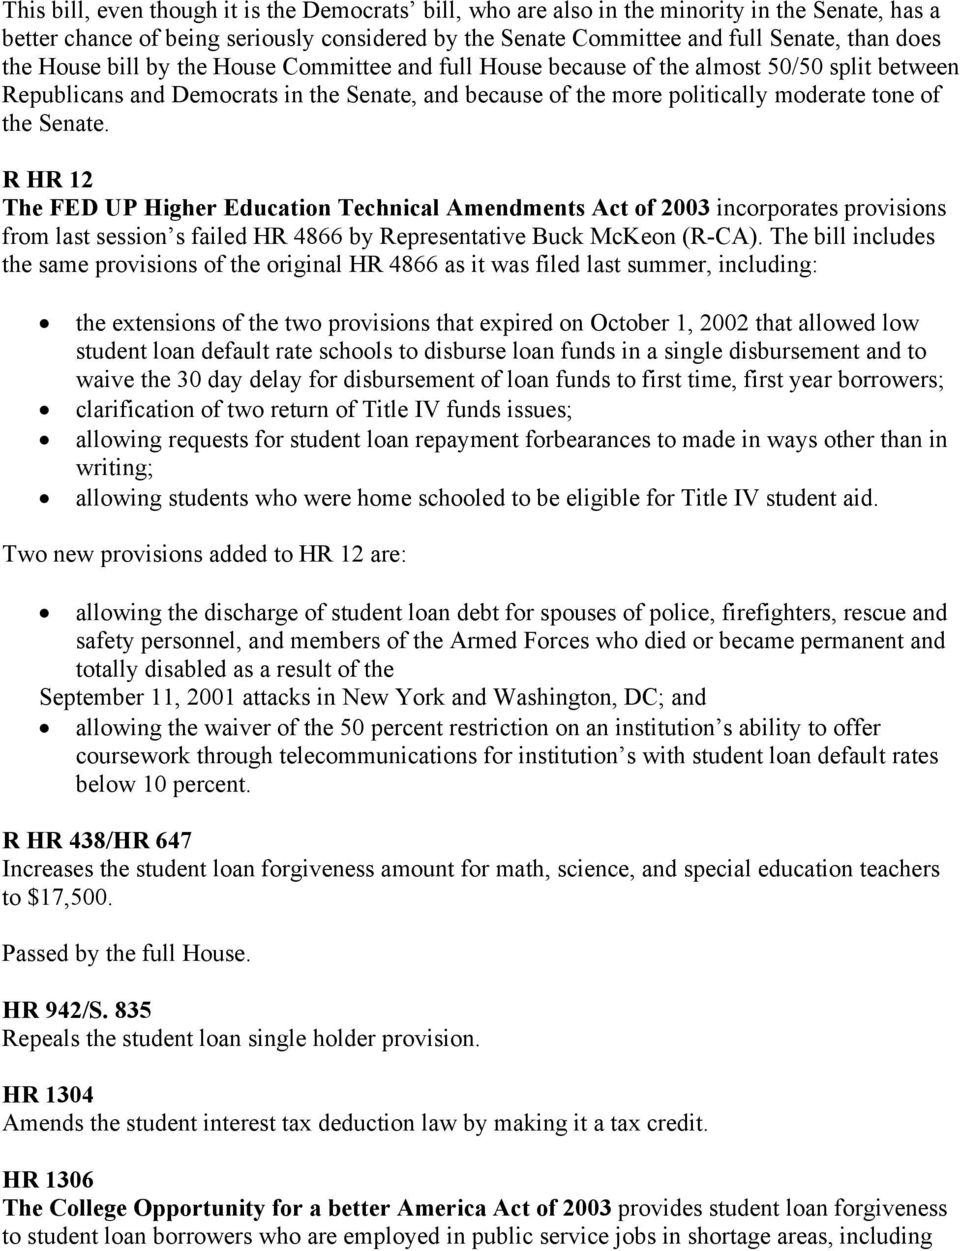 R HR 12 The FED UP Higher Education Technical Amendments Act of 2003 incorporates provisions from last session s failed HR 4866 by Representative Buck McKeon (R-CA).